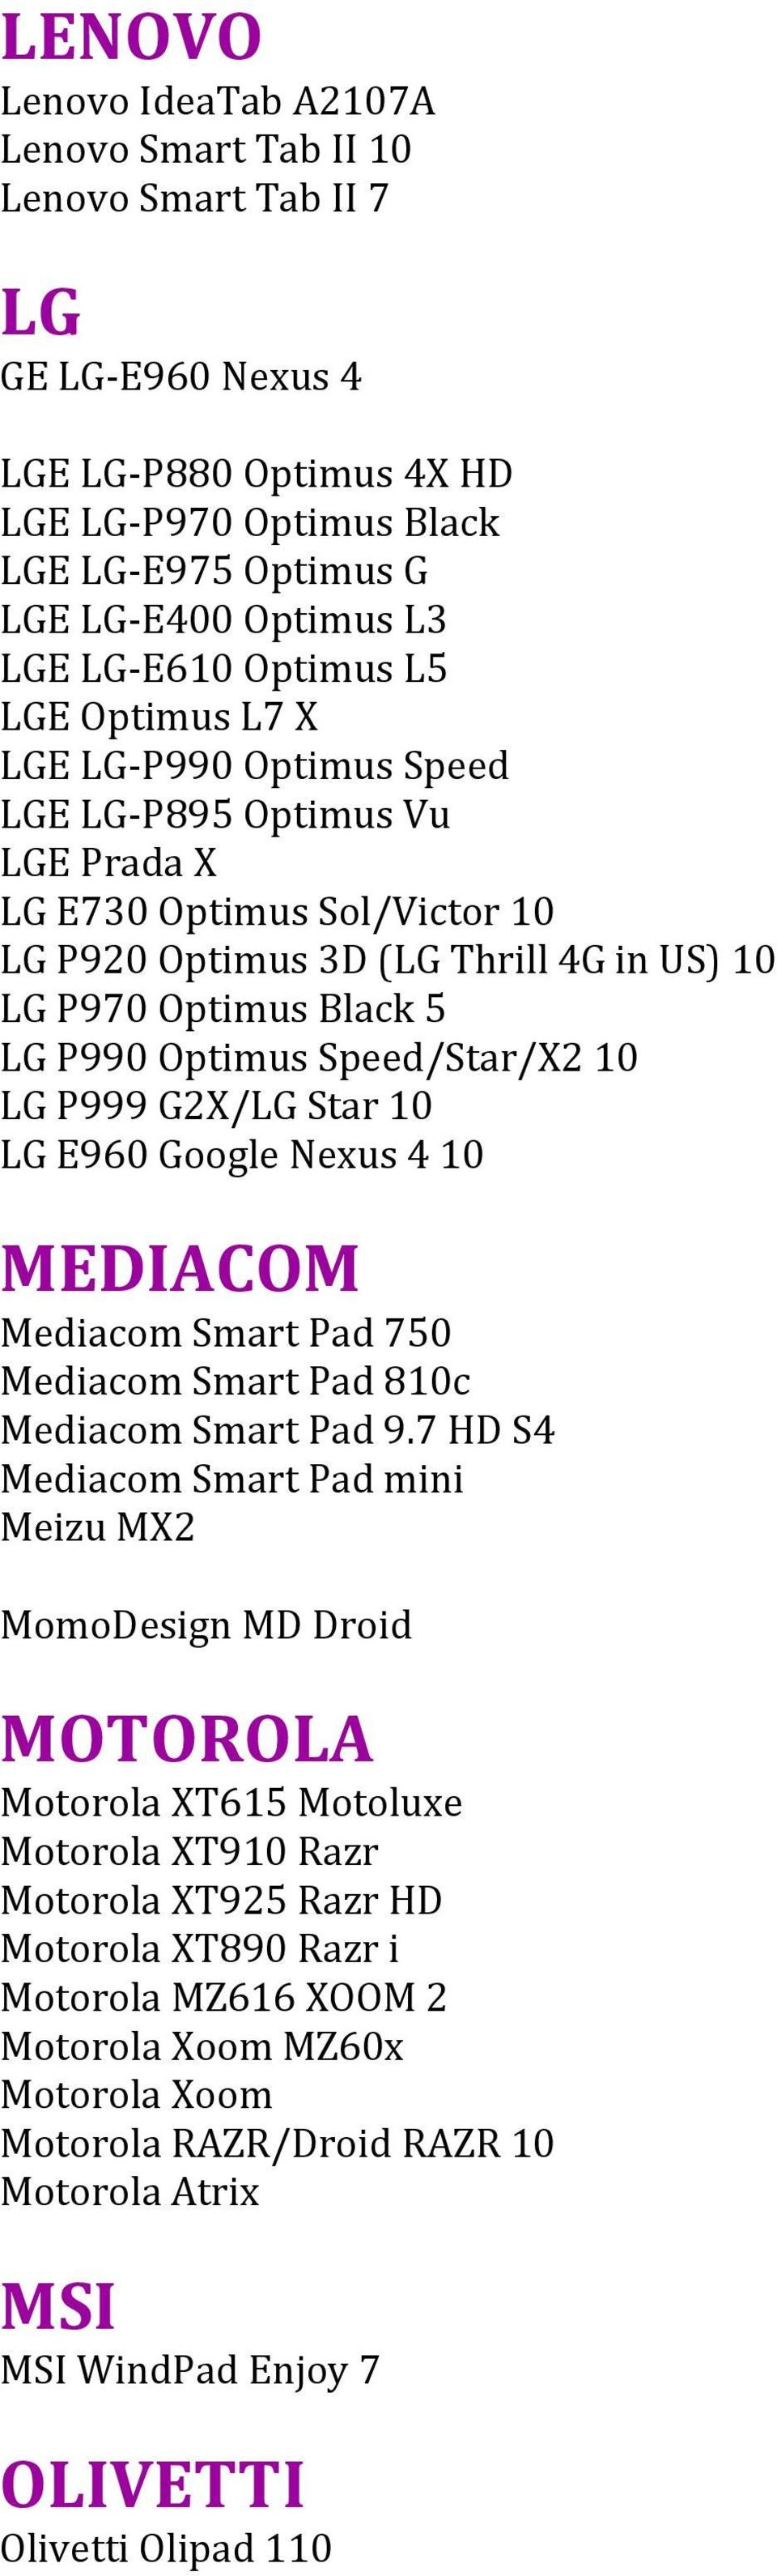 5 LG P990 Optimus Speed/Star/X2 10 LG P999 G2X/LG Star 10 LG E960 Google Nexus 4 10 MEDIACOM Mediacom Smart Pad 750 Mediacom Smart Pad 810c Mediacom Smart Pad 9.